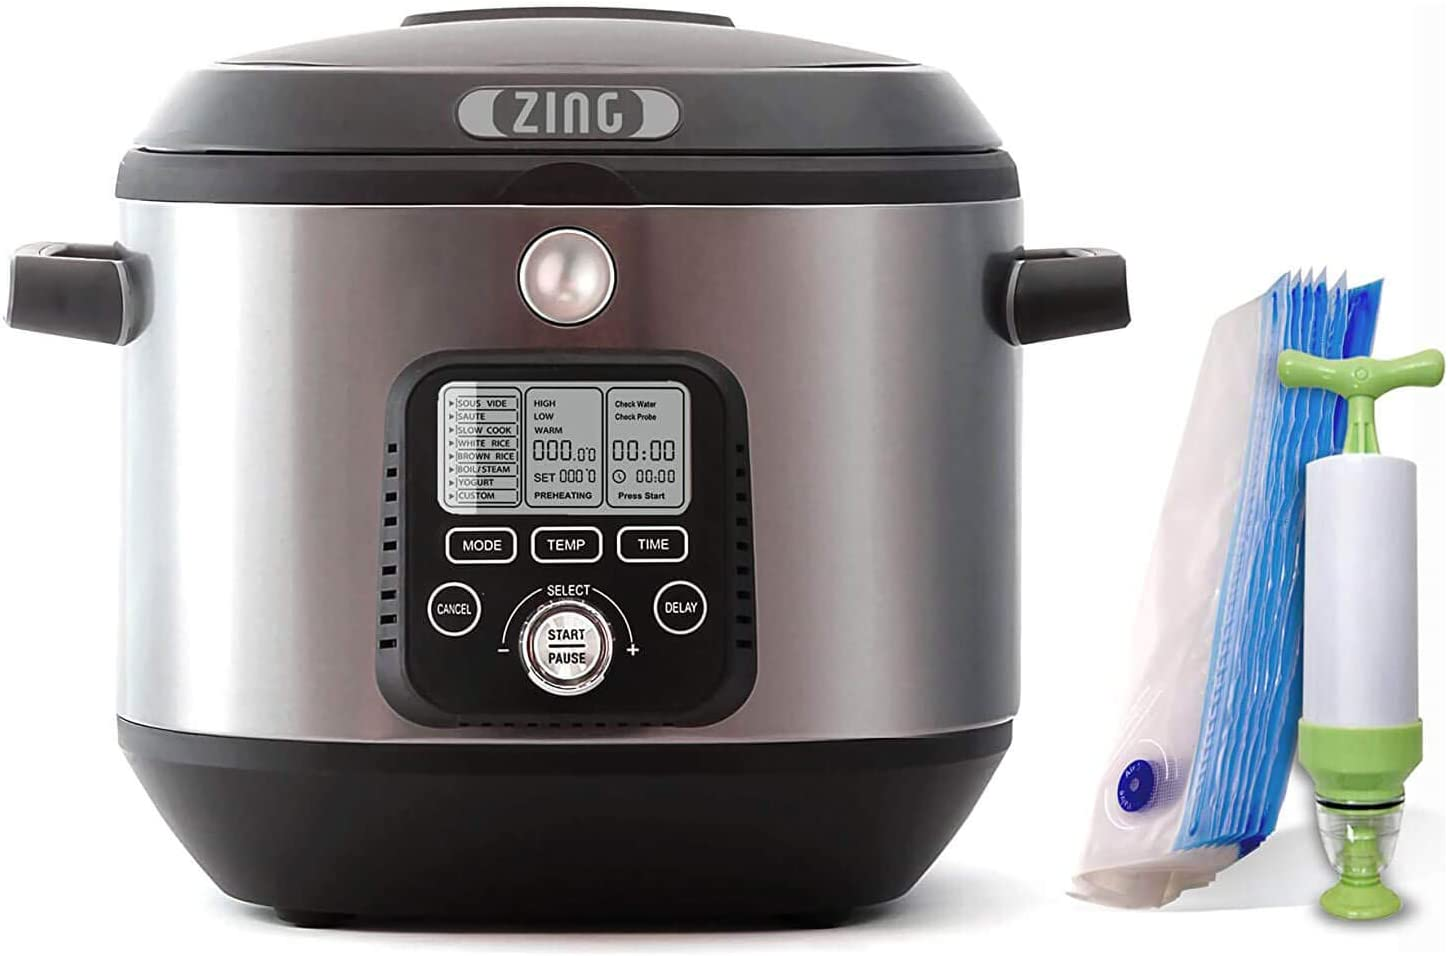 Zing Sous Vide Cooker Machine Starter Kit, 6 Quart Pot, Stainless Steel, Programmable Precise Temperature Cooking with Digital Timer – Manual Vacuum Sealer Included